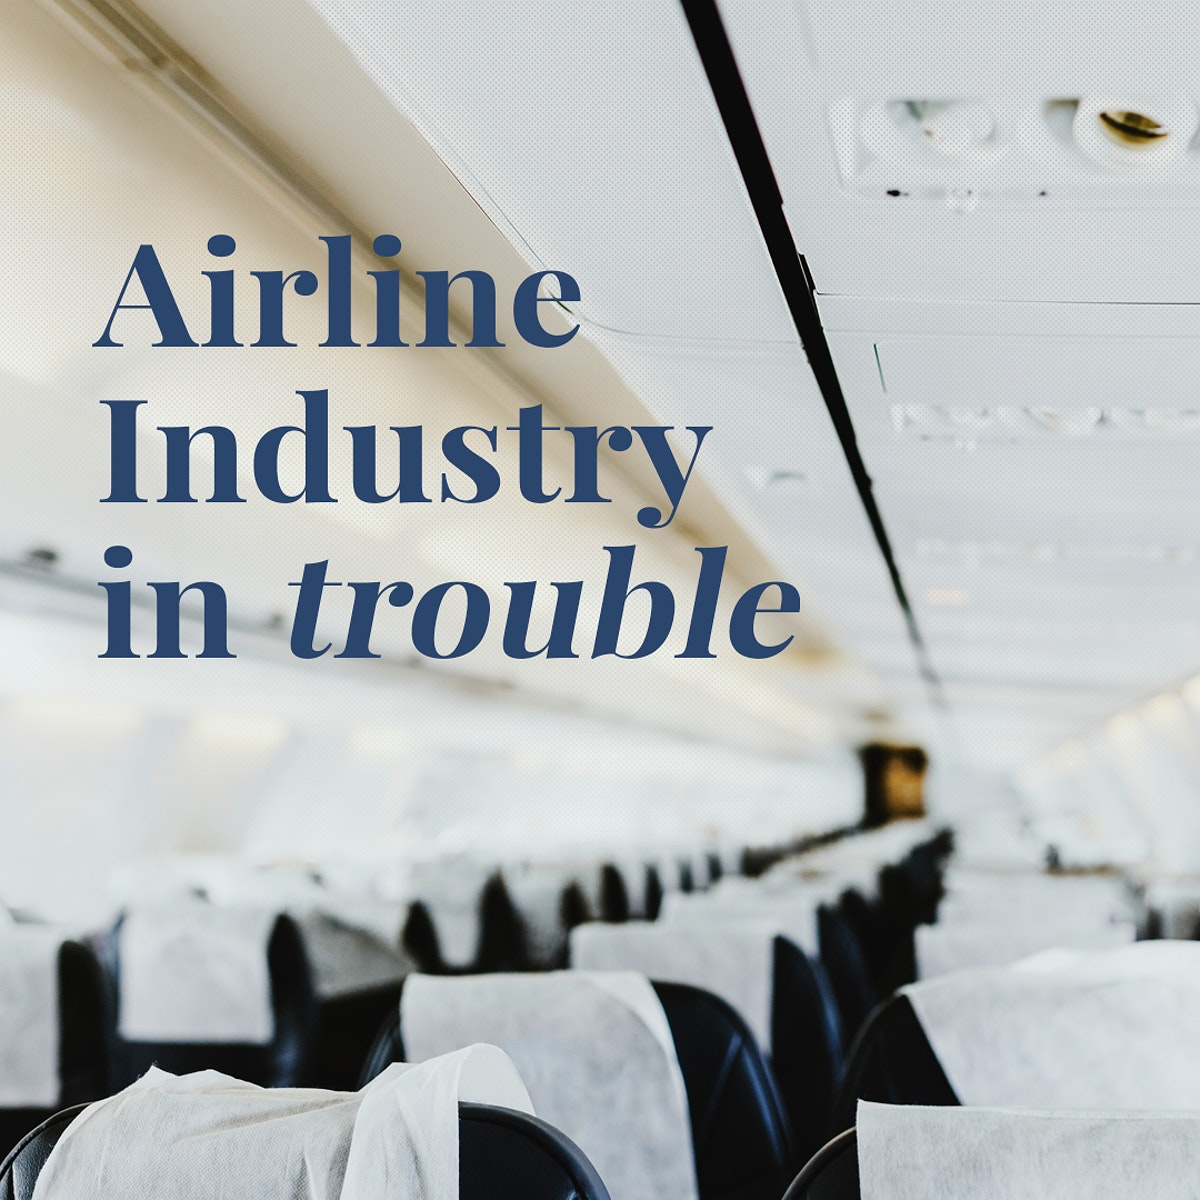 Airline industry in trouble during coronavirus outbreak